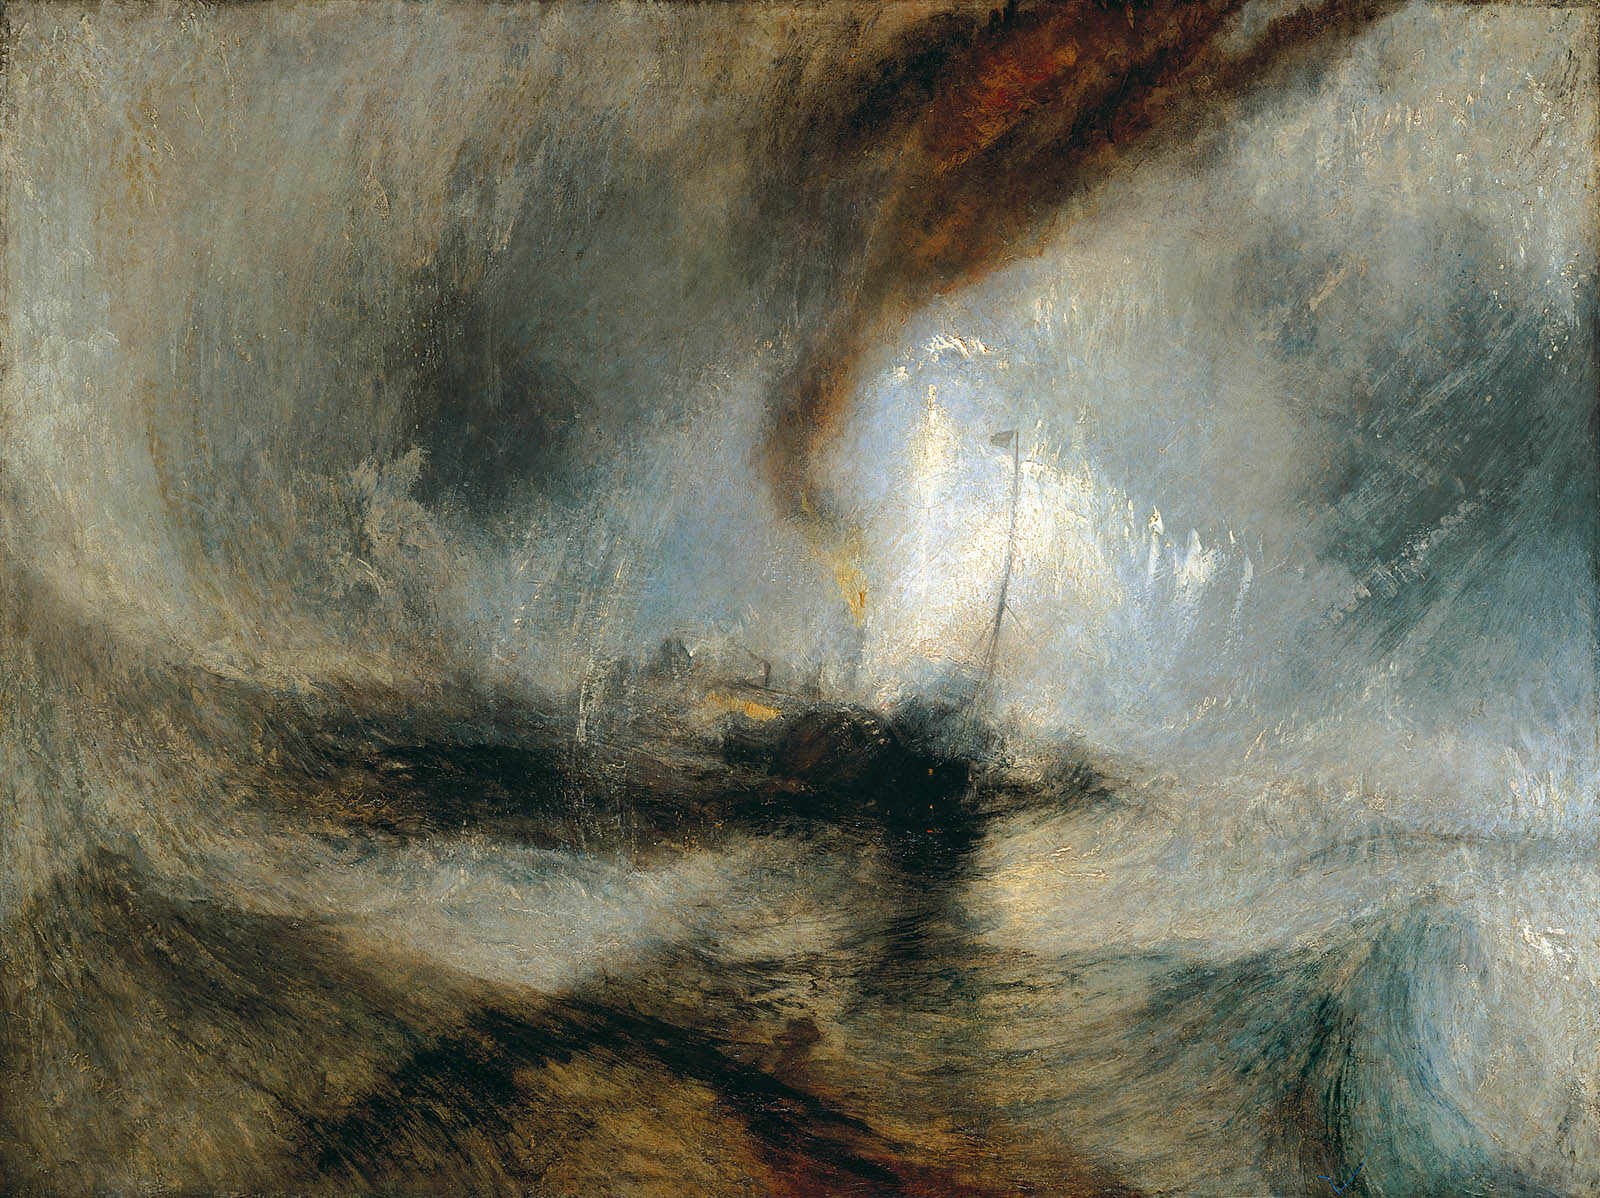 William Turner. Tormenta de nieve: barbo de vapor en la boca de un puerto. Hacia 1842. Tate Britain. Londres.